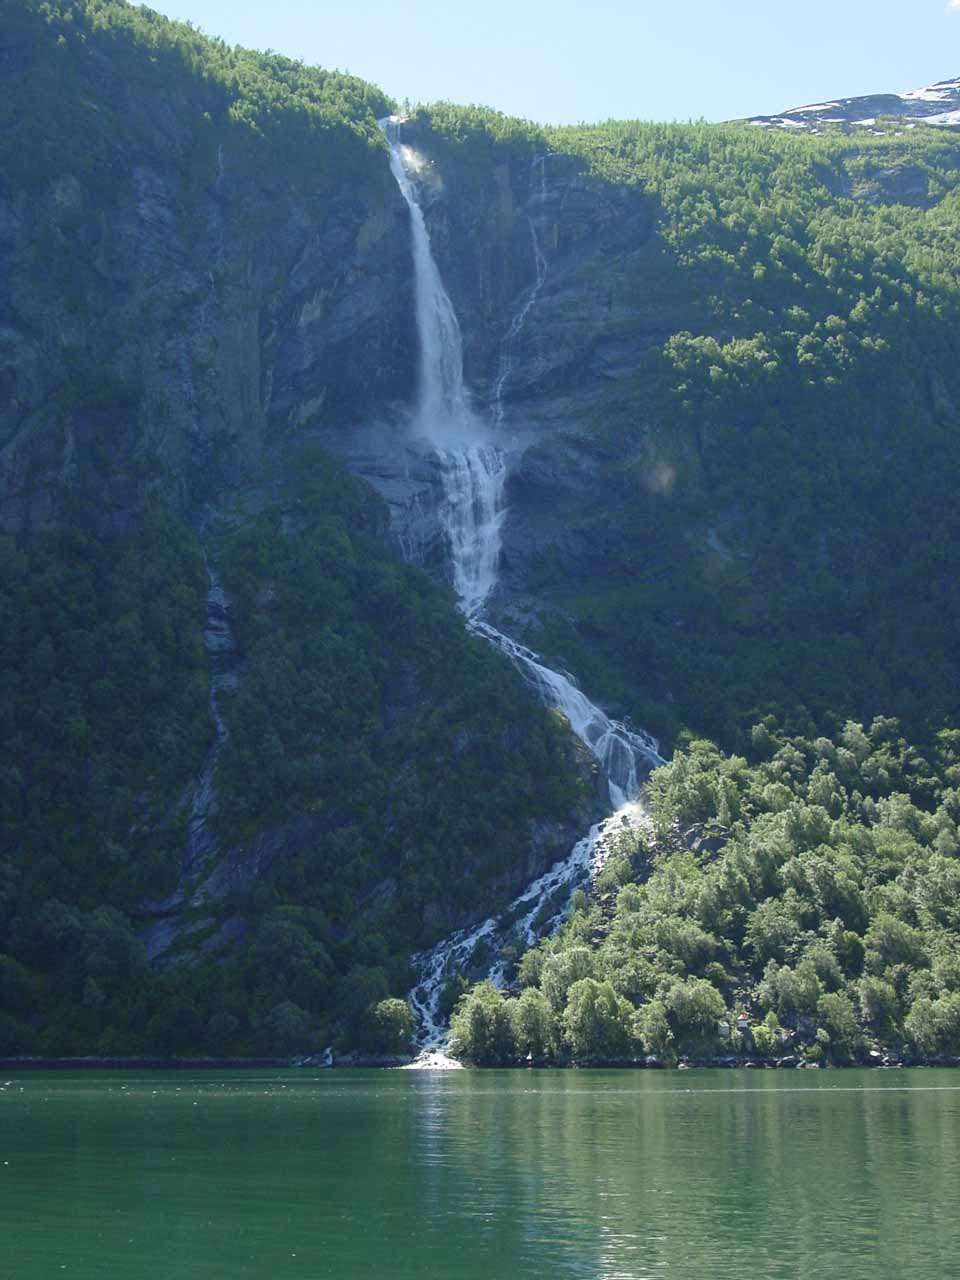 Now that we were headed east back to Geiranger, we got to see these waterfalls again, like this more frontal view of Ljosurfossen